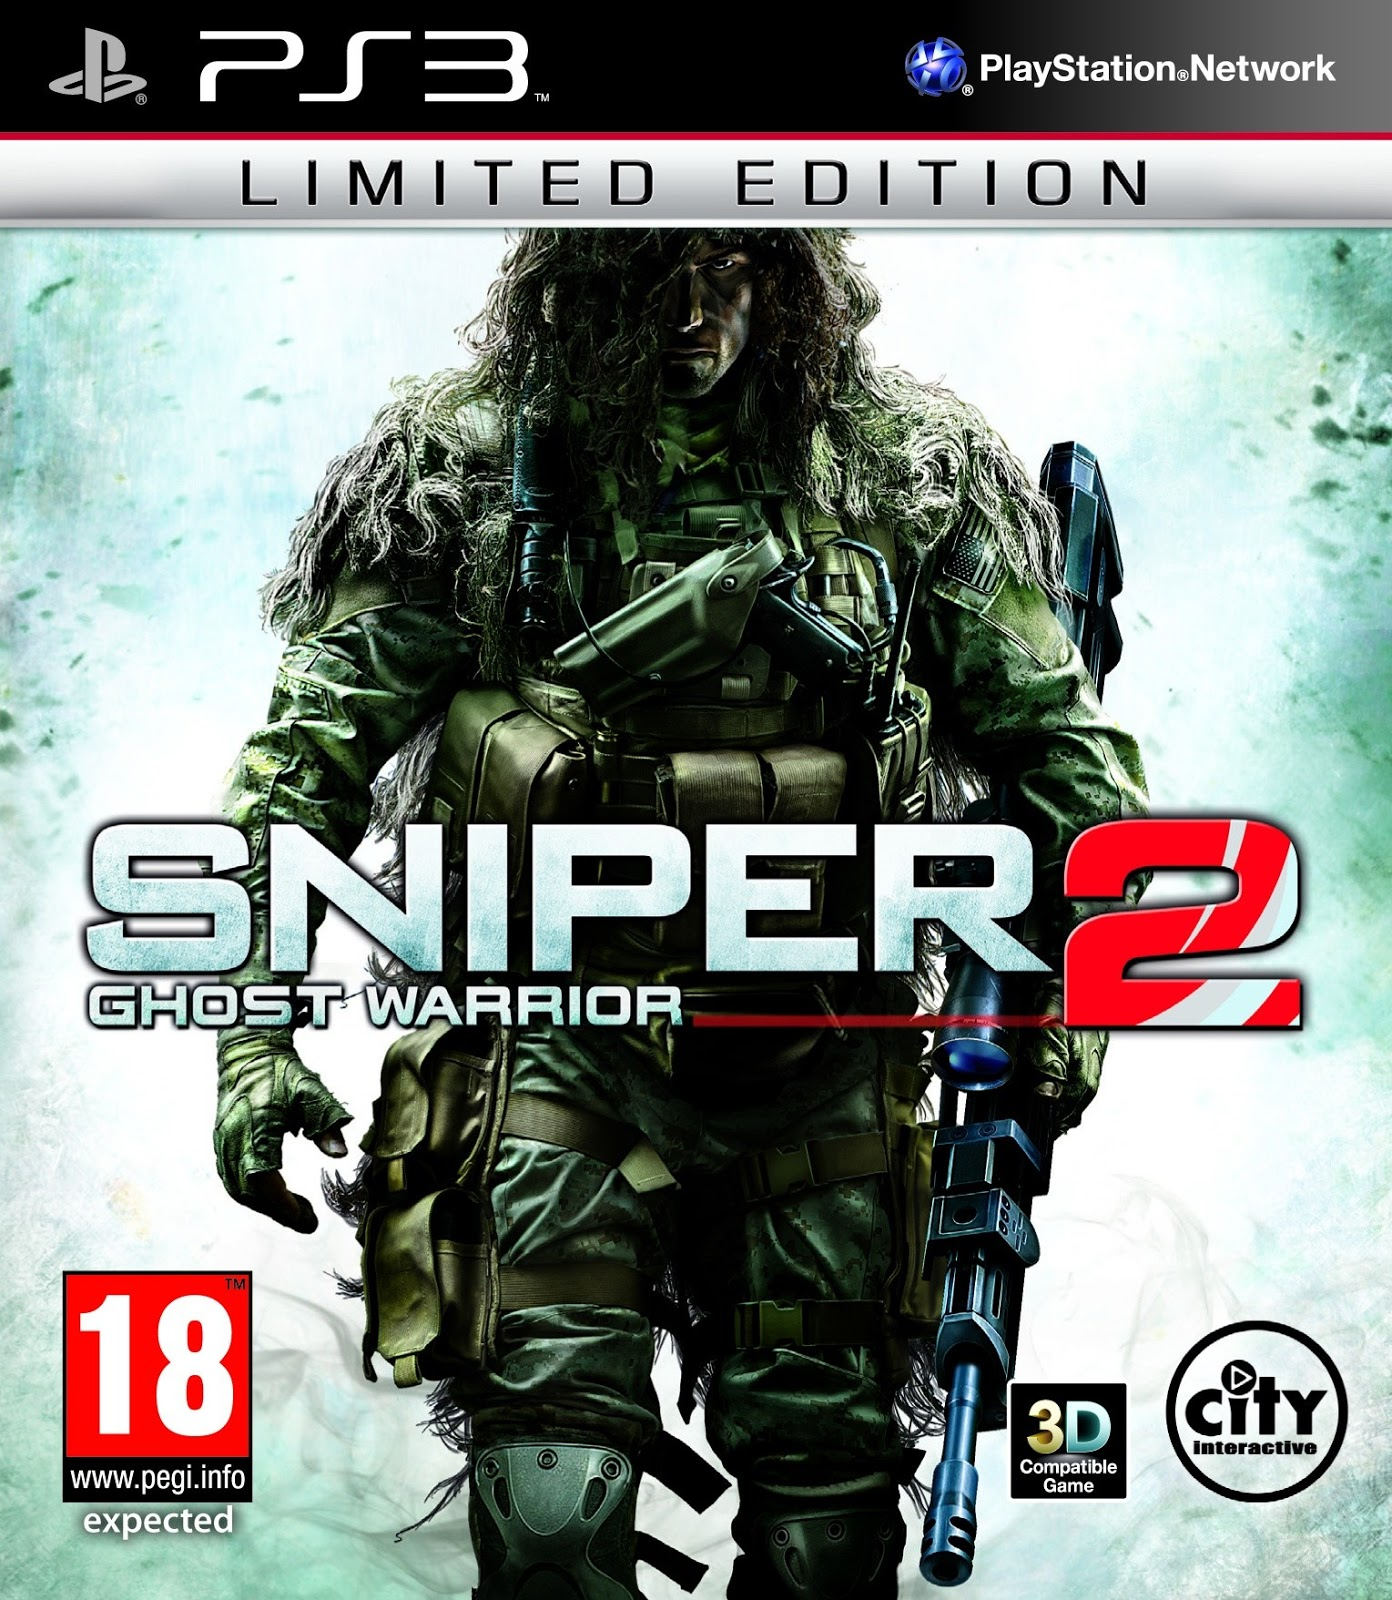 PS3 Sniper Ghost Warrior 2 BLES01527 EBOOT Fix for CFW 3 55